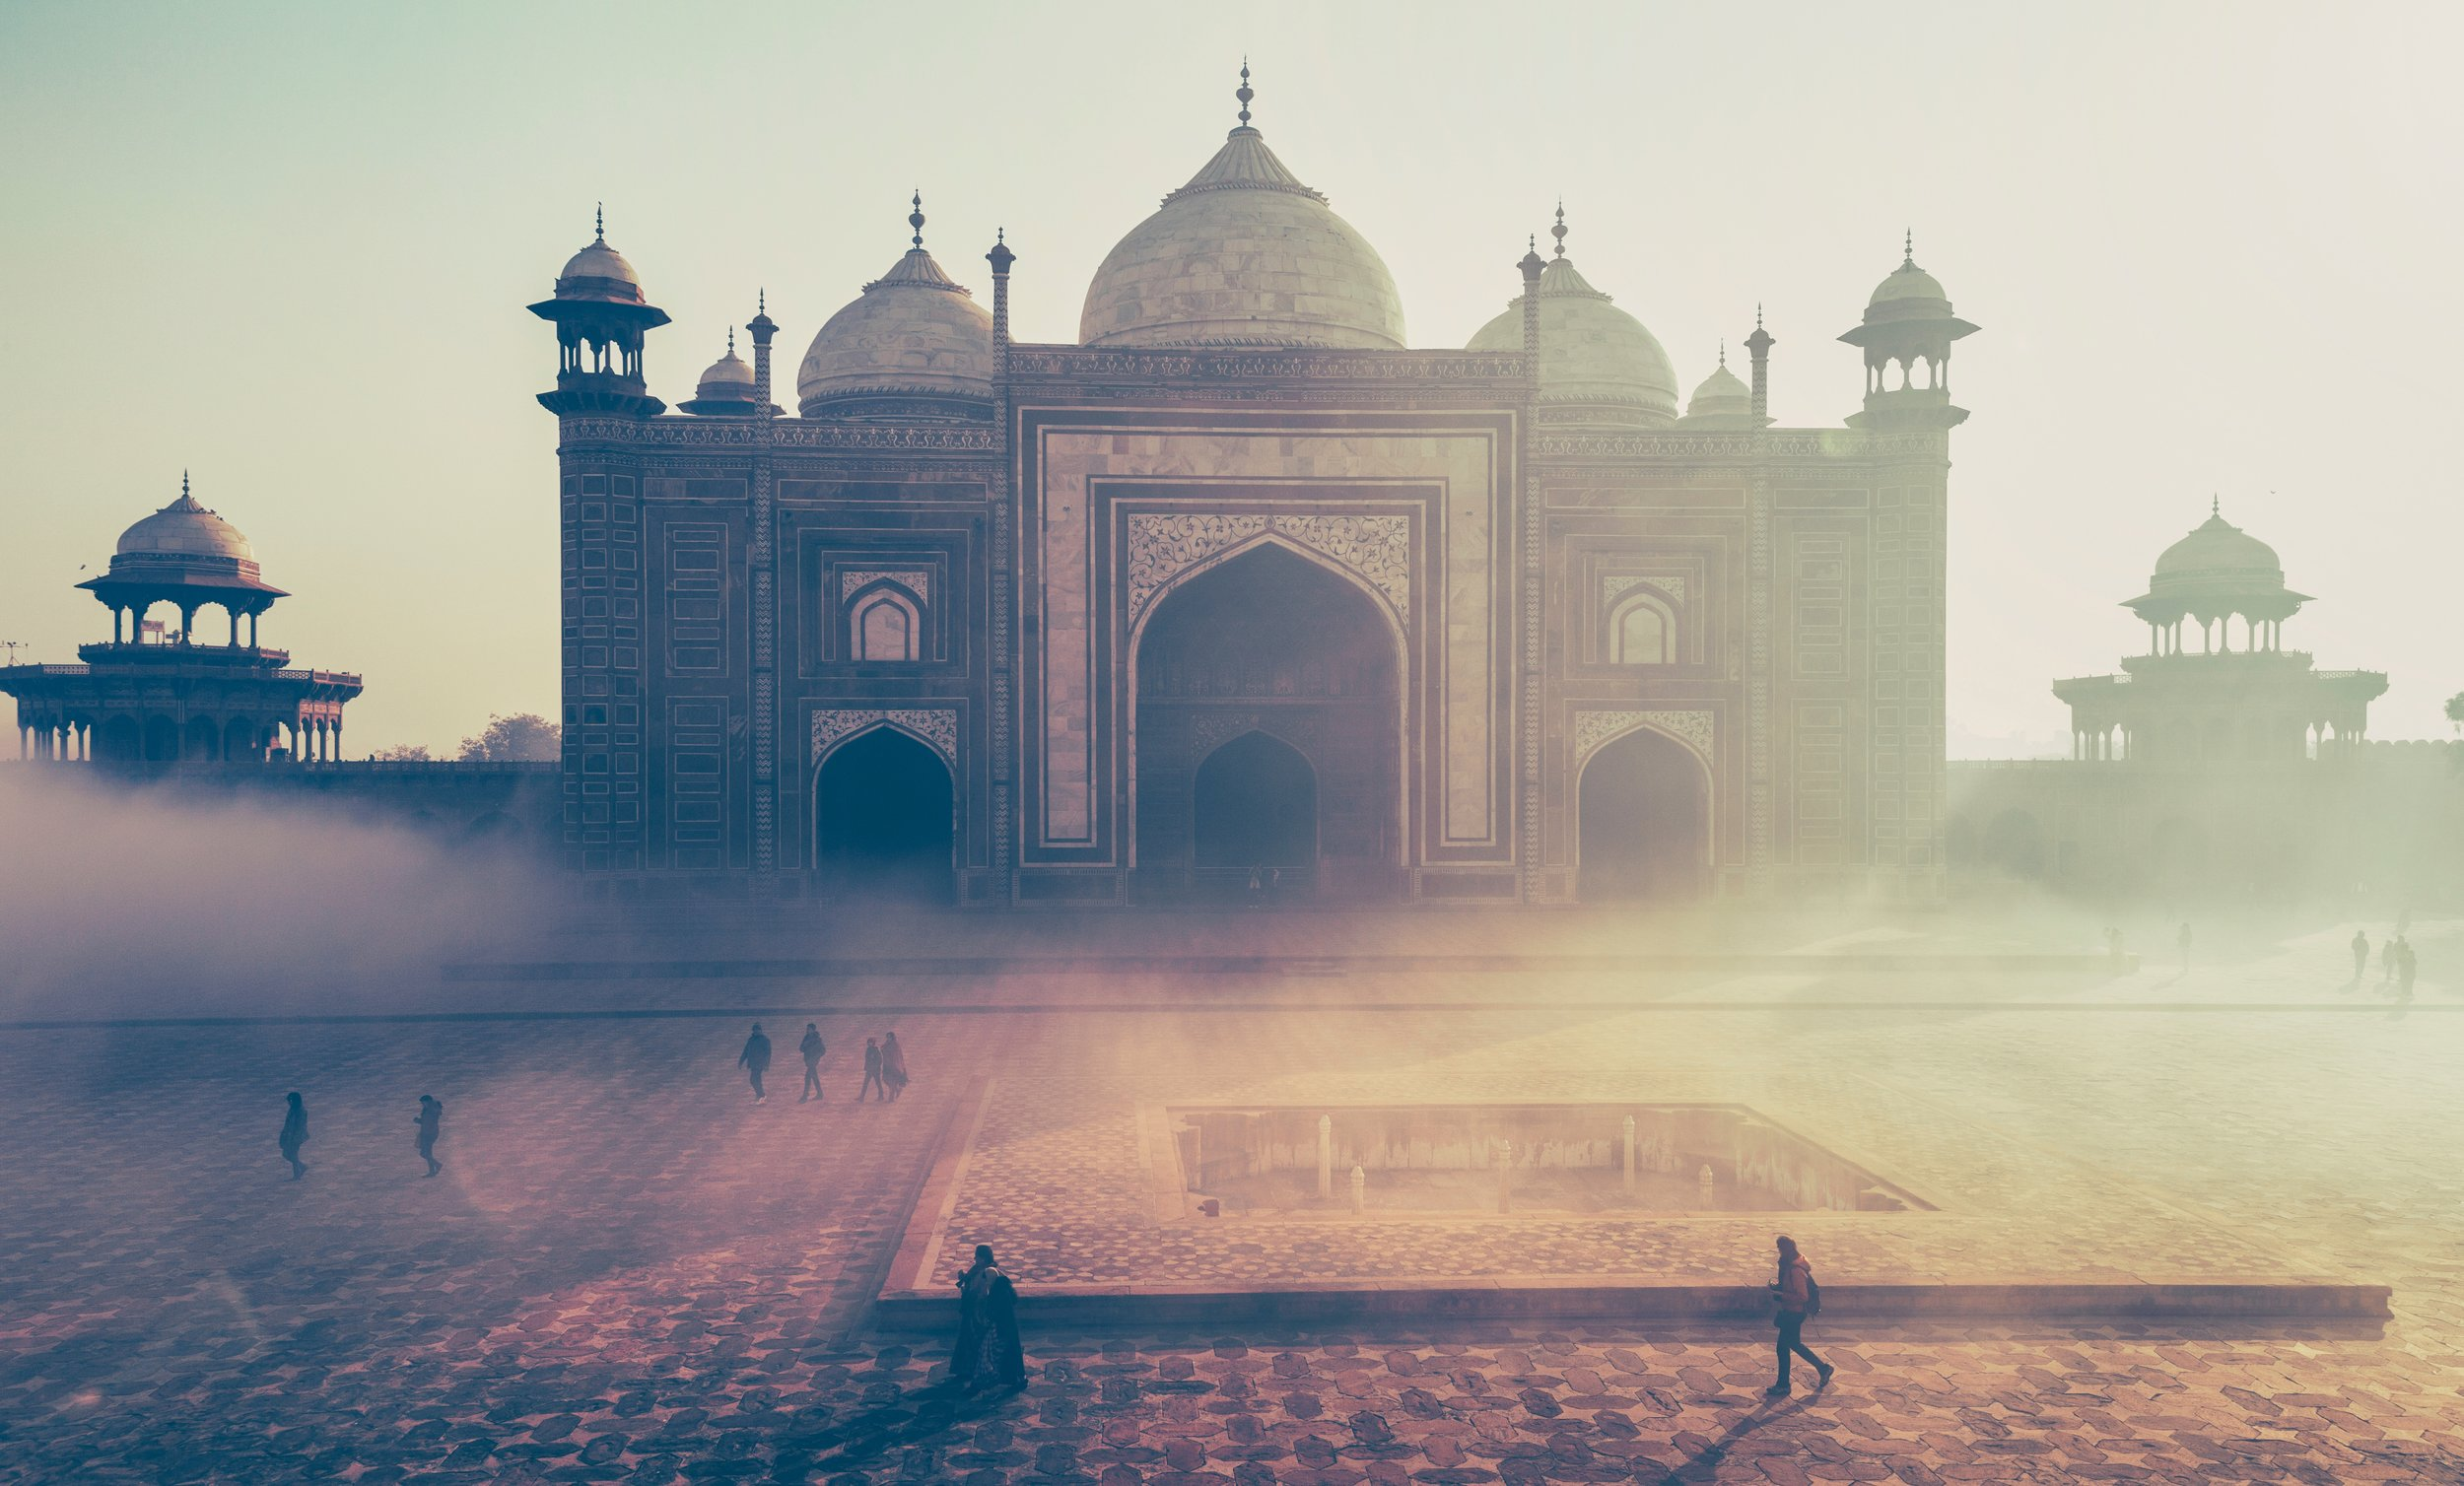 taj mahal like building unsplash.jpg